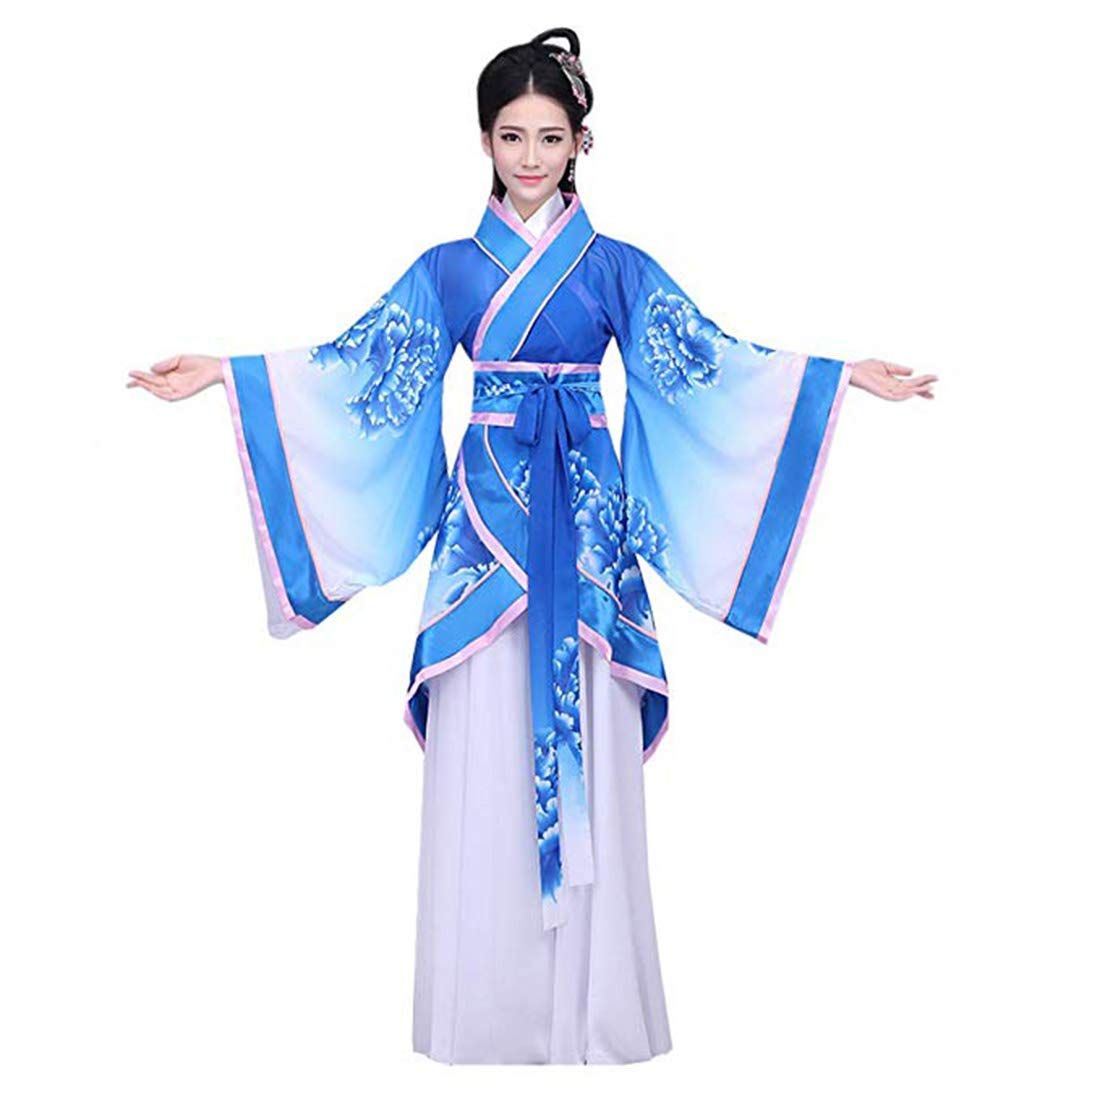 Ez-sofei Women's Ancient Chinese Traditional Hanfu Dress Han Dynasty Cosplay Costume (L, G-Blue)